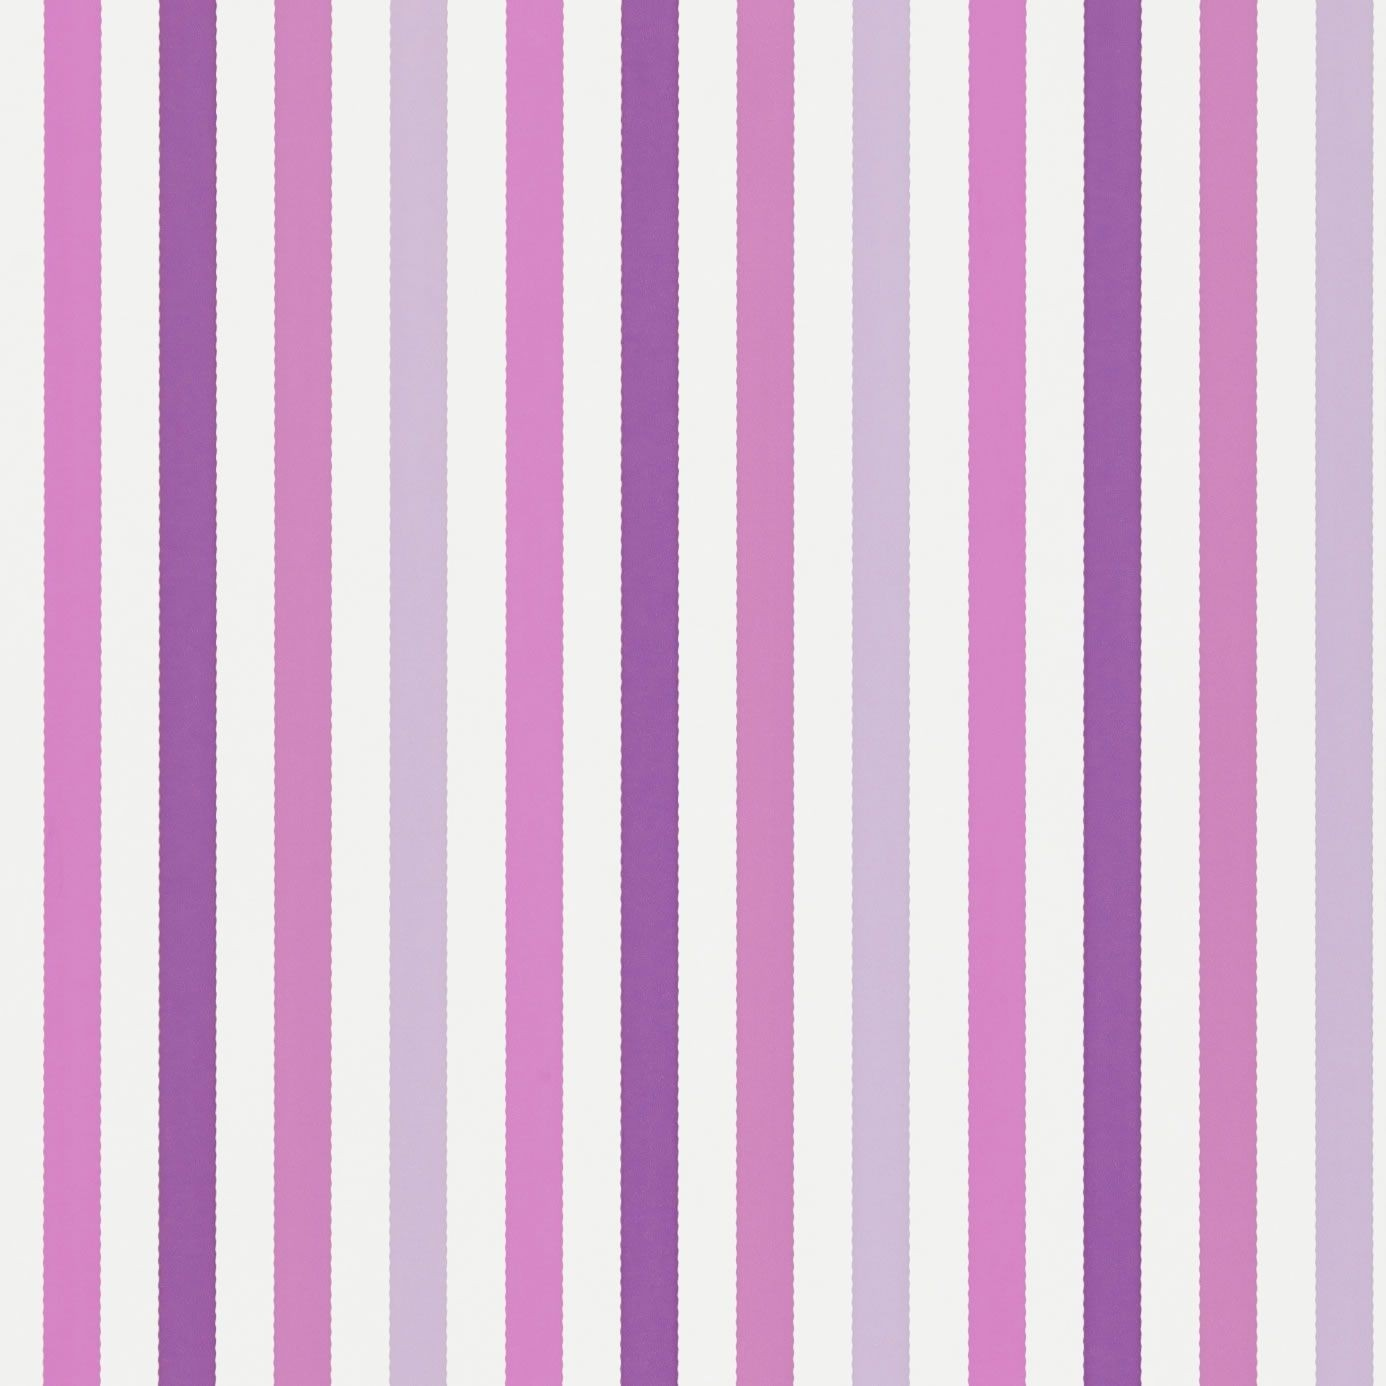 Pink And Purple Striped Wallpaper